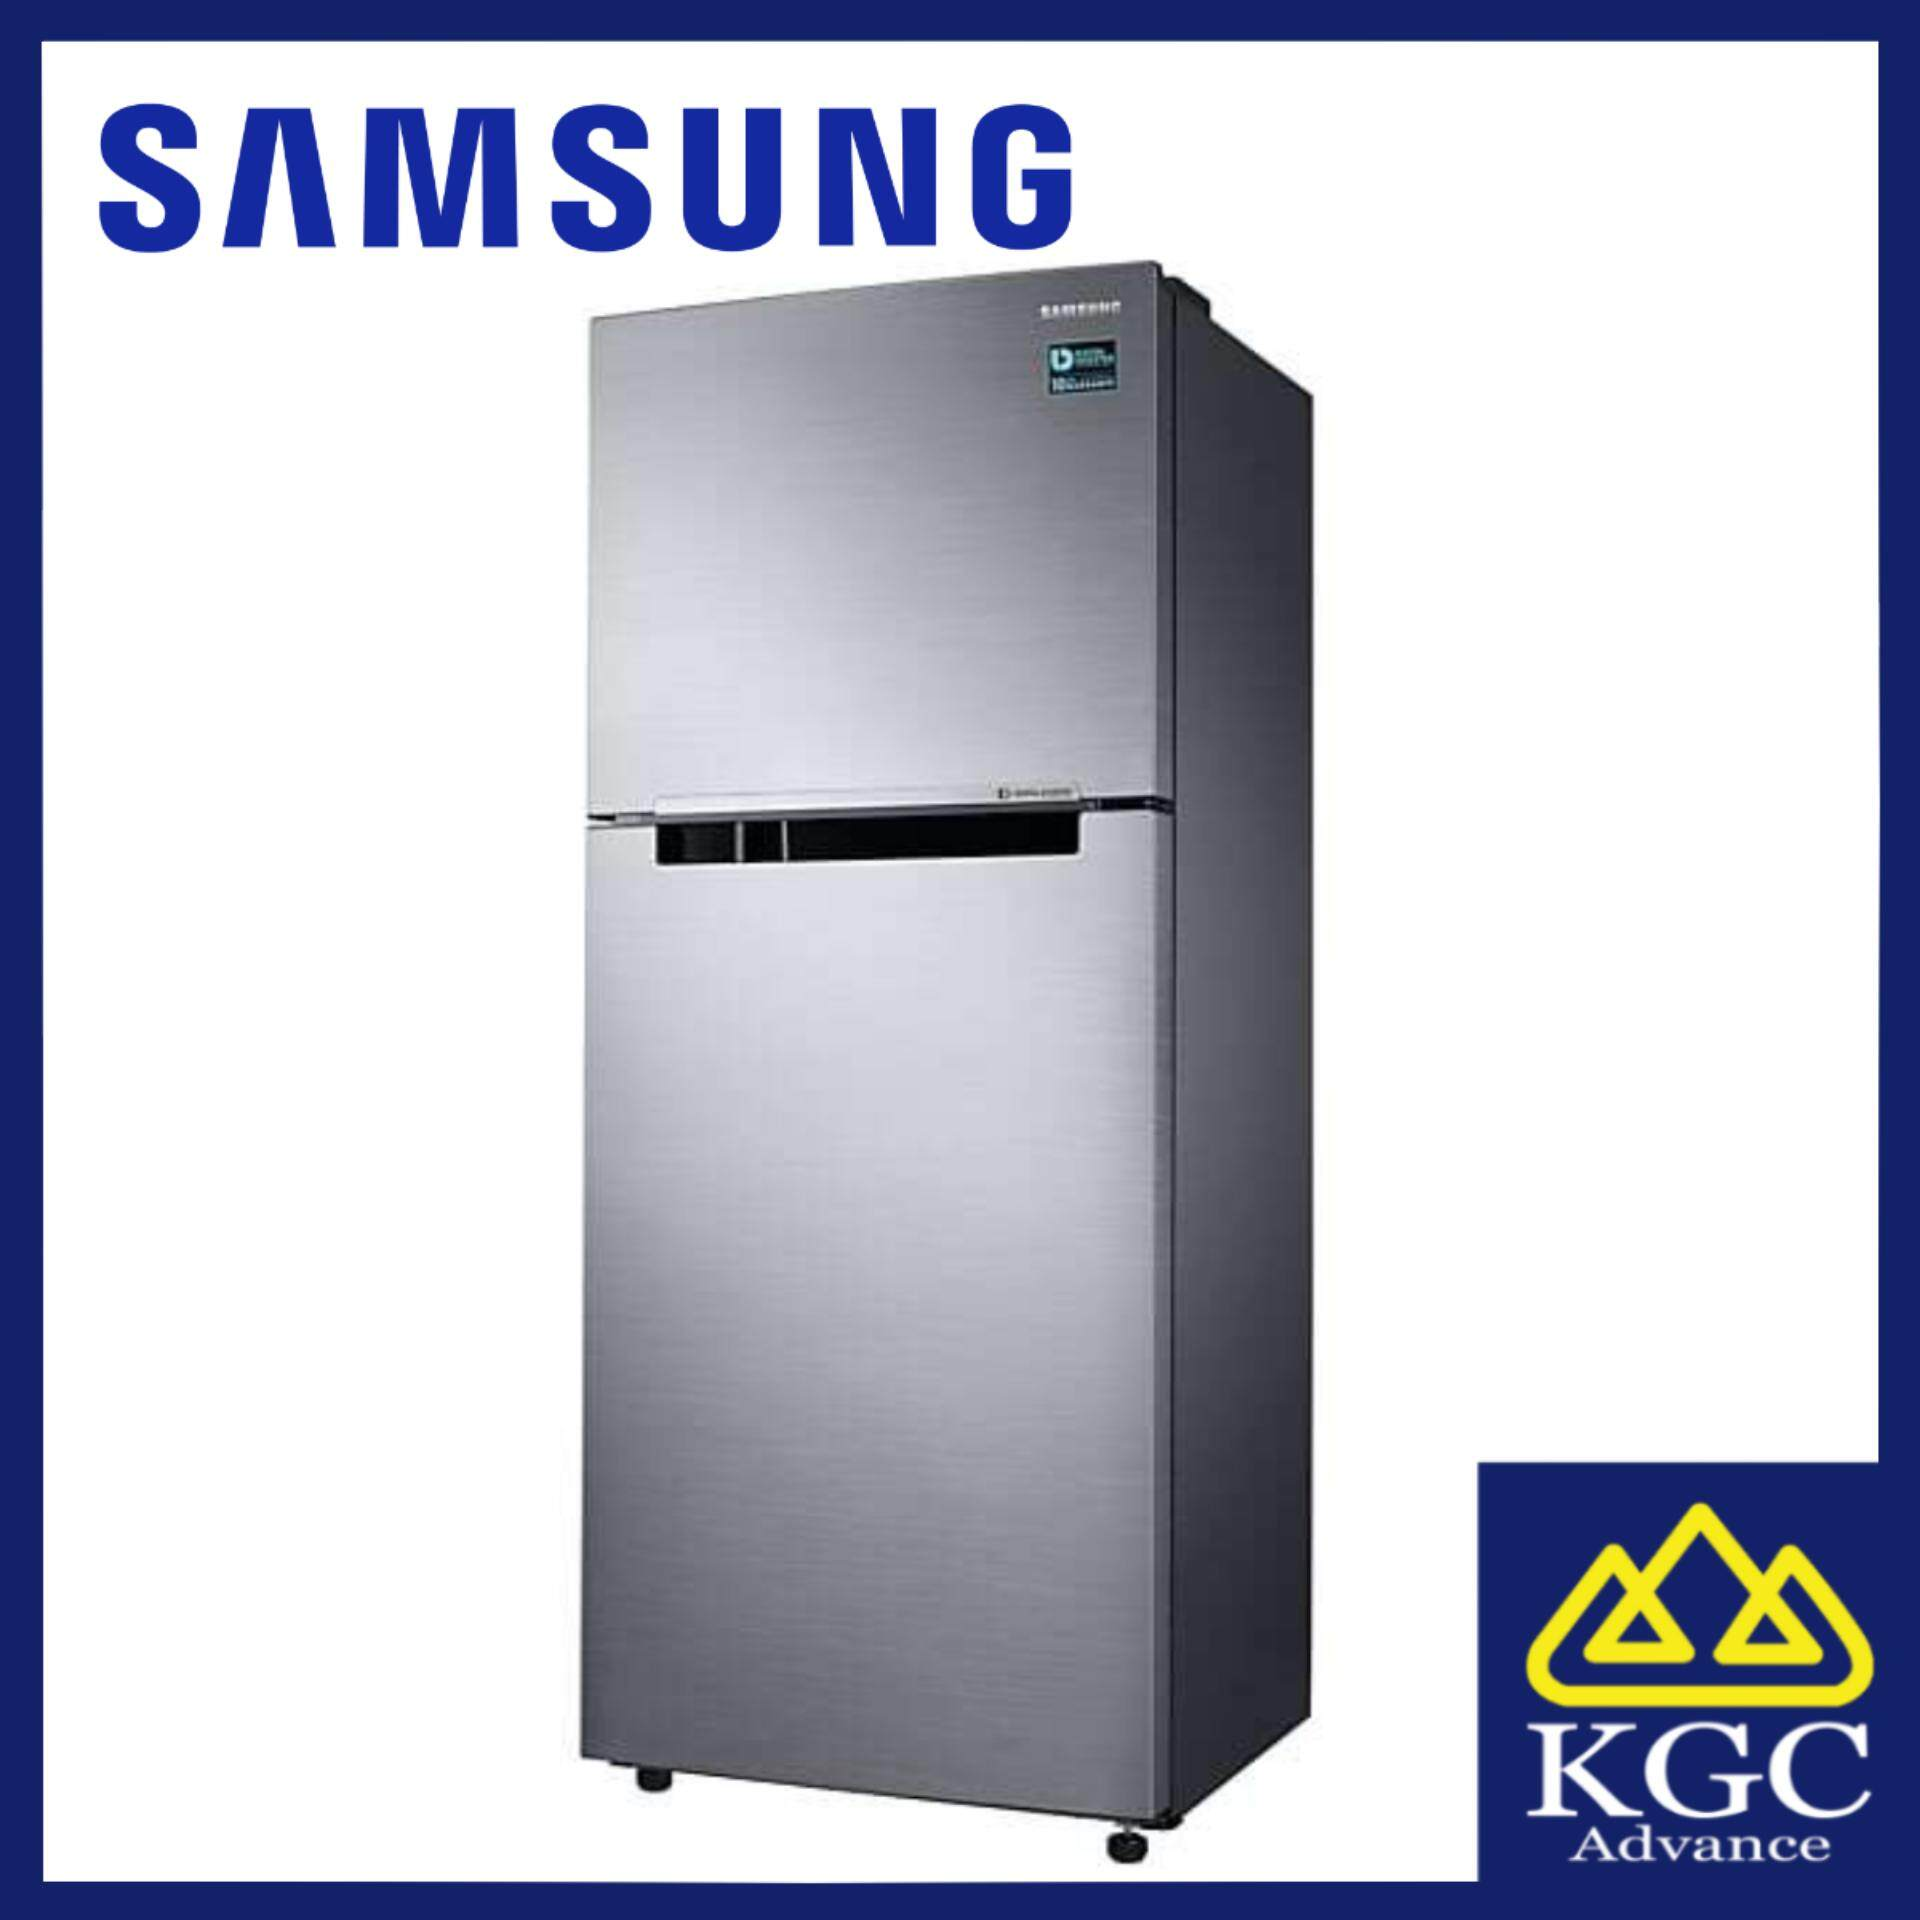 SAMSUNG Top Mount Freezer with Twin Cooling Plus™ RT29K5032S8